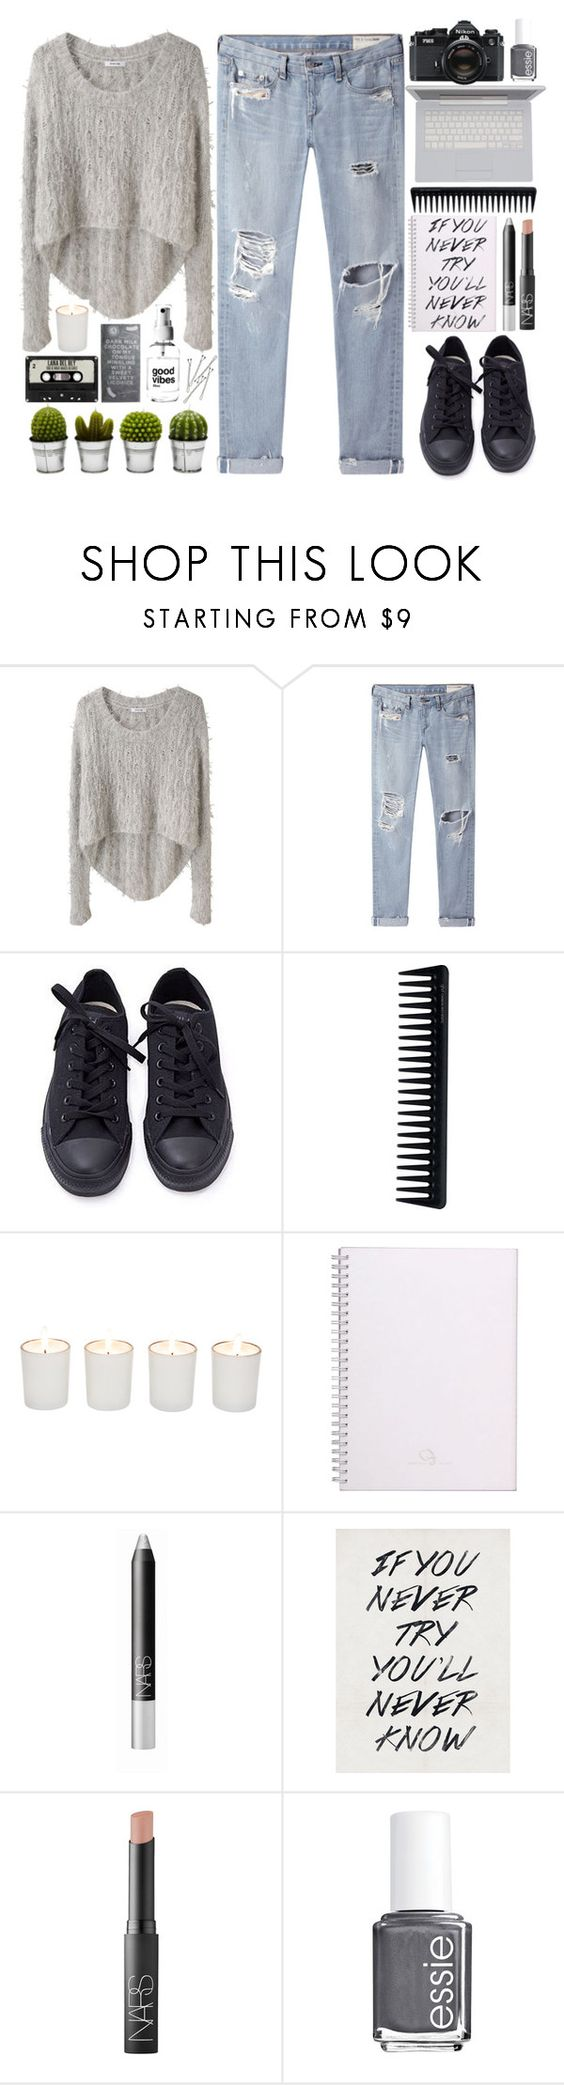 """Cloudy Morning"" by poppyy-92 ❤ liked on Polyvore featuring Helmut Lang, rag & bone/JEAN, Converse, GHD, Witchery, NARS Cosmetics, BOBBY, Nikon, Essie and Billabong"